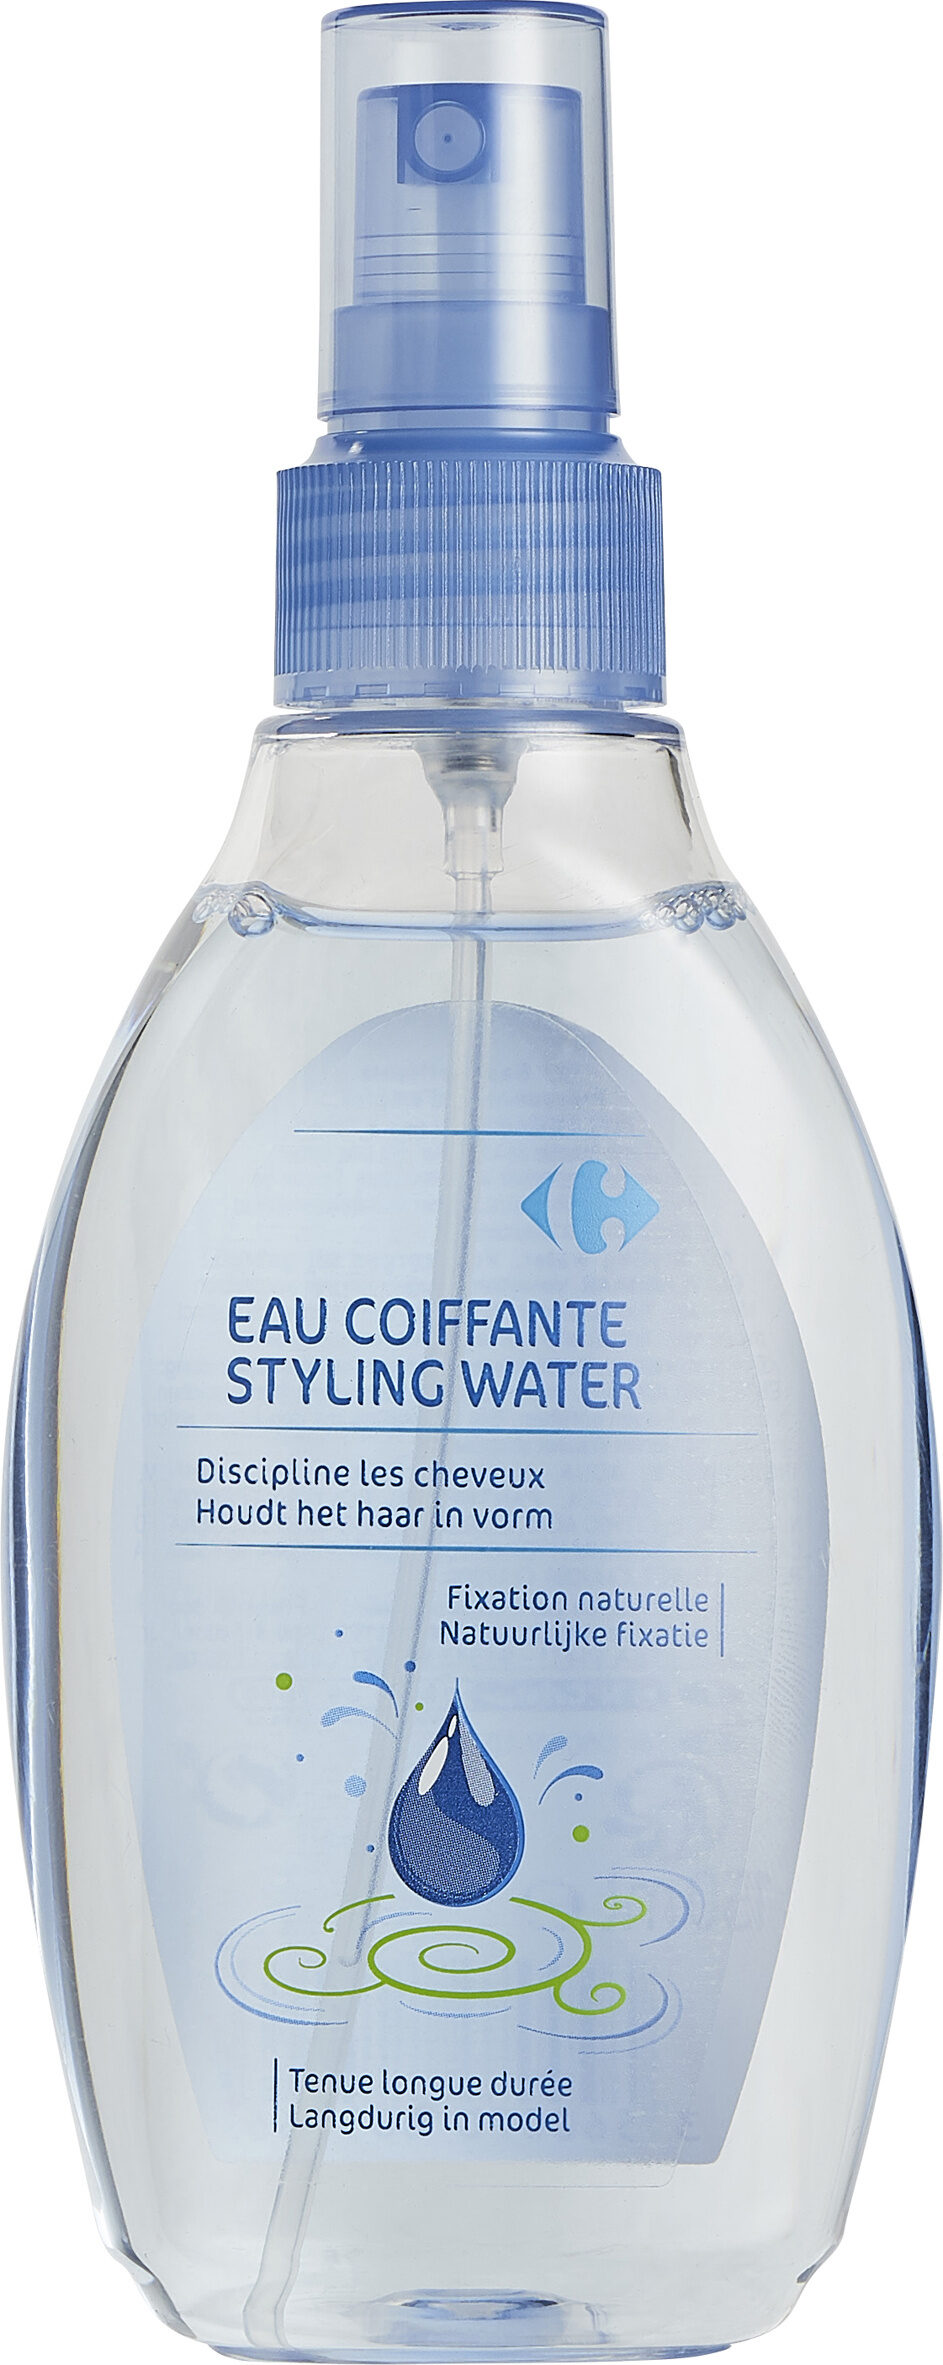 Eau coiffante fixation naturelle - Product - fr